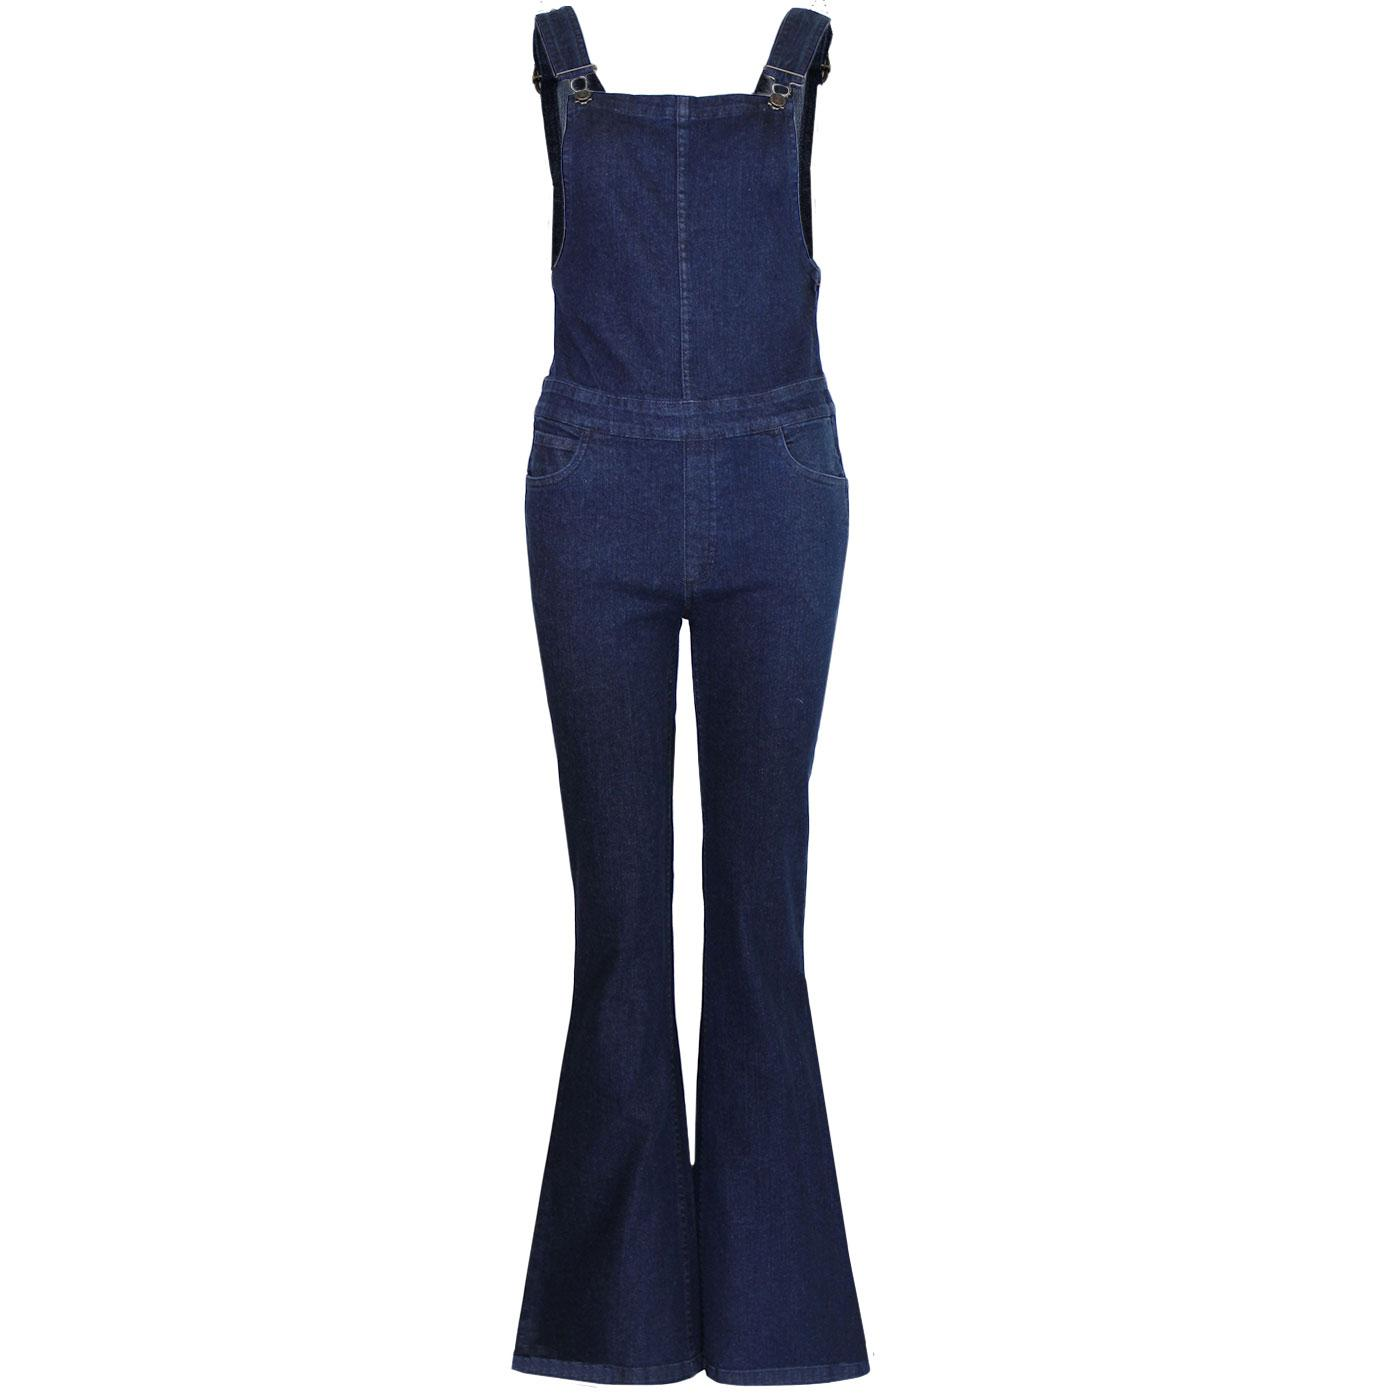 Bellbottom Blues MADCAP ENGLAND Dungaree Flares